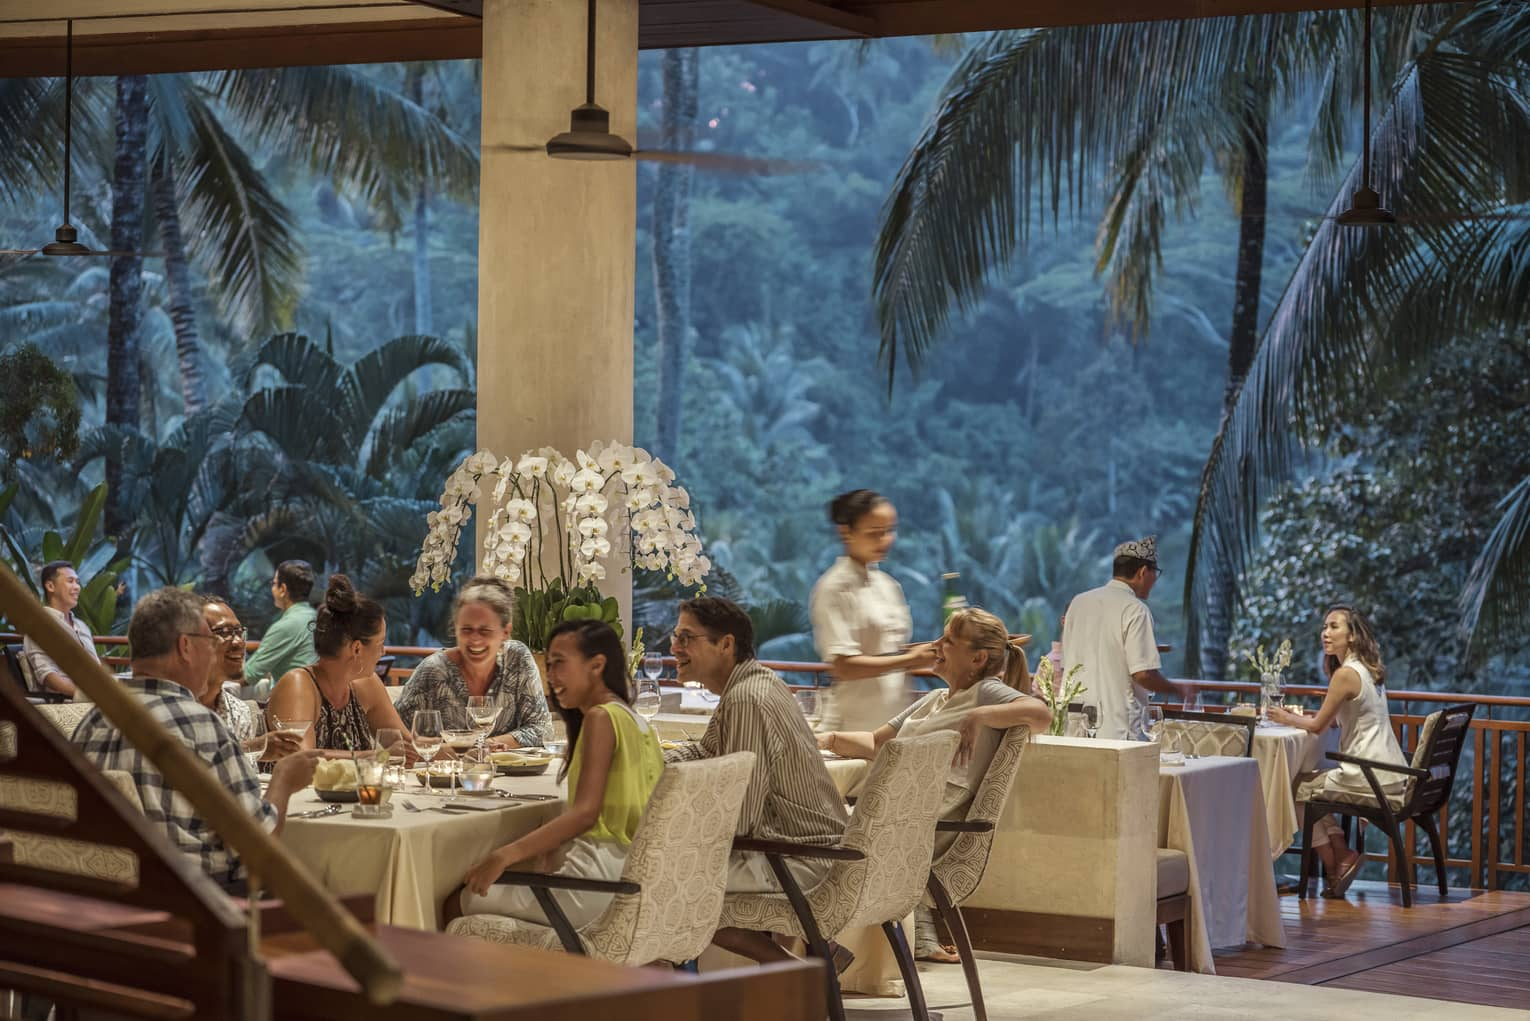 Ayung Terrace open air restaurant dining room surrounded by large palms